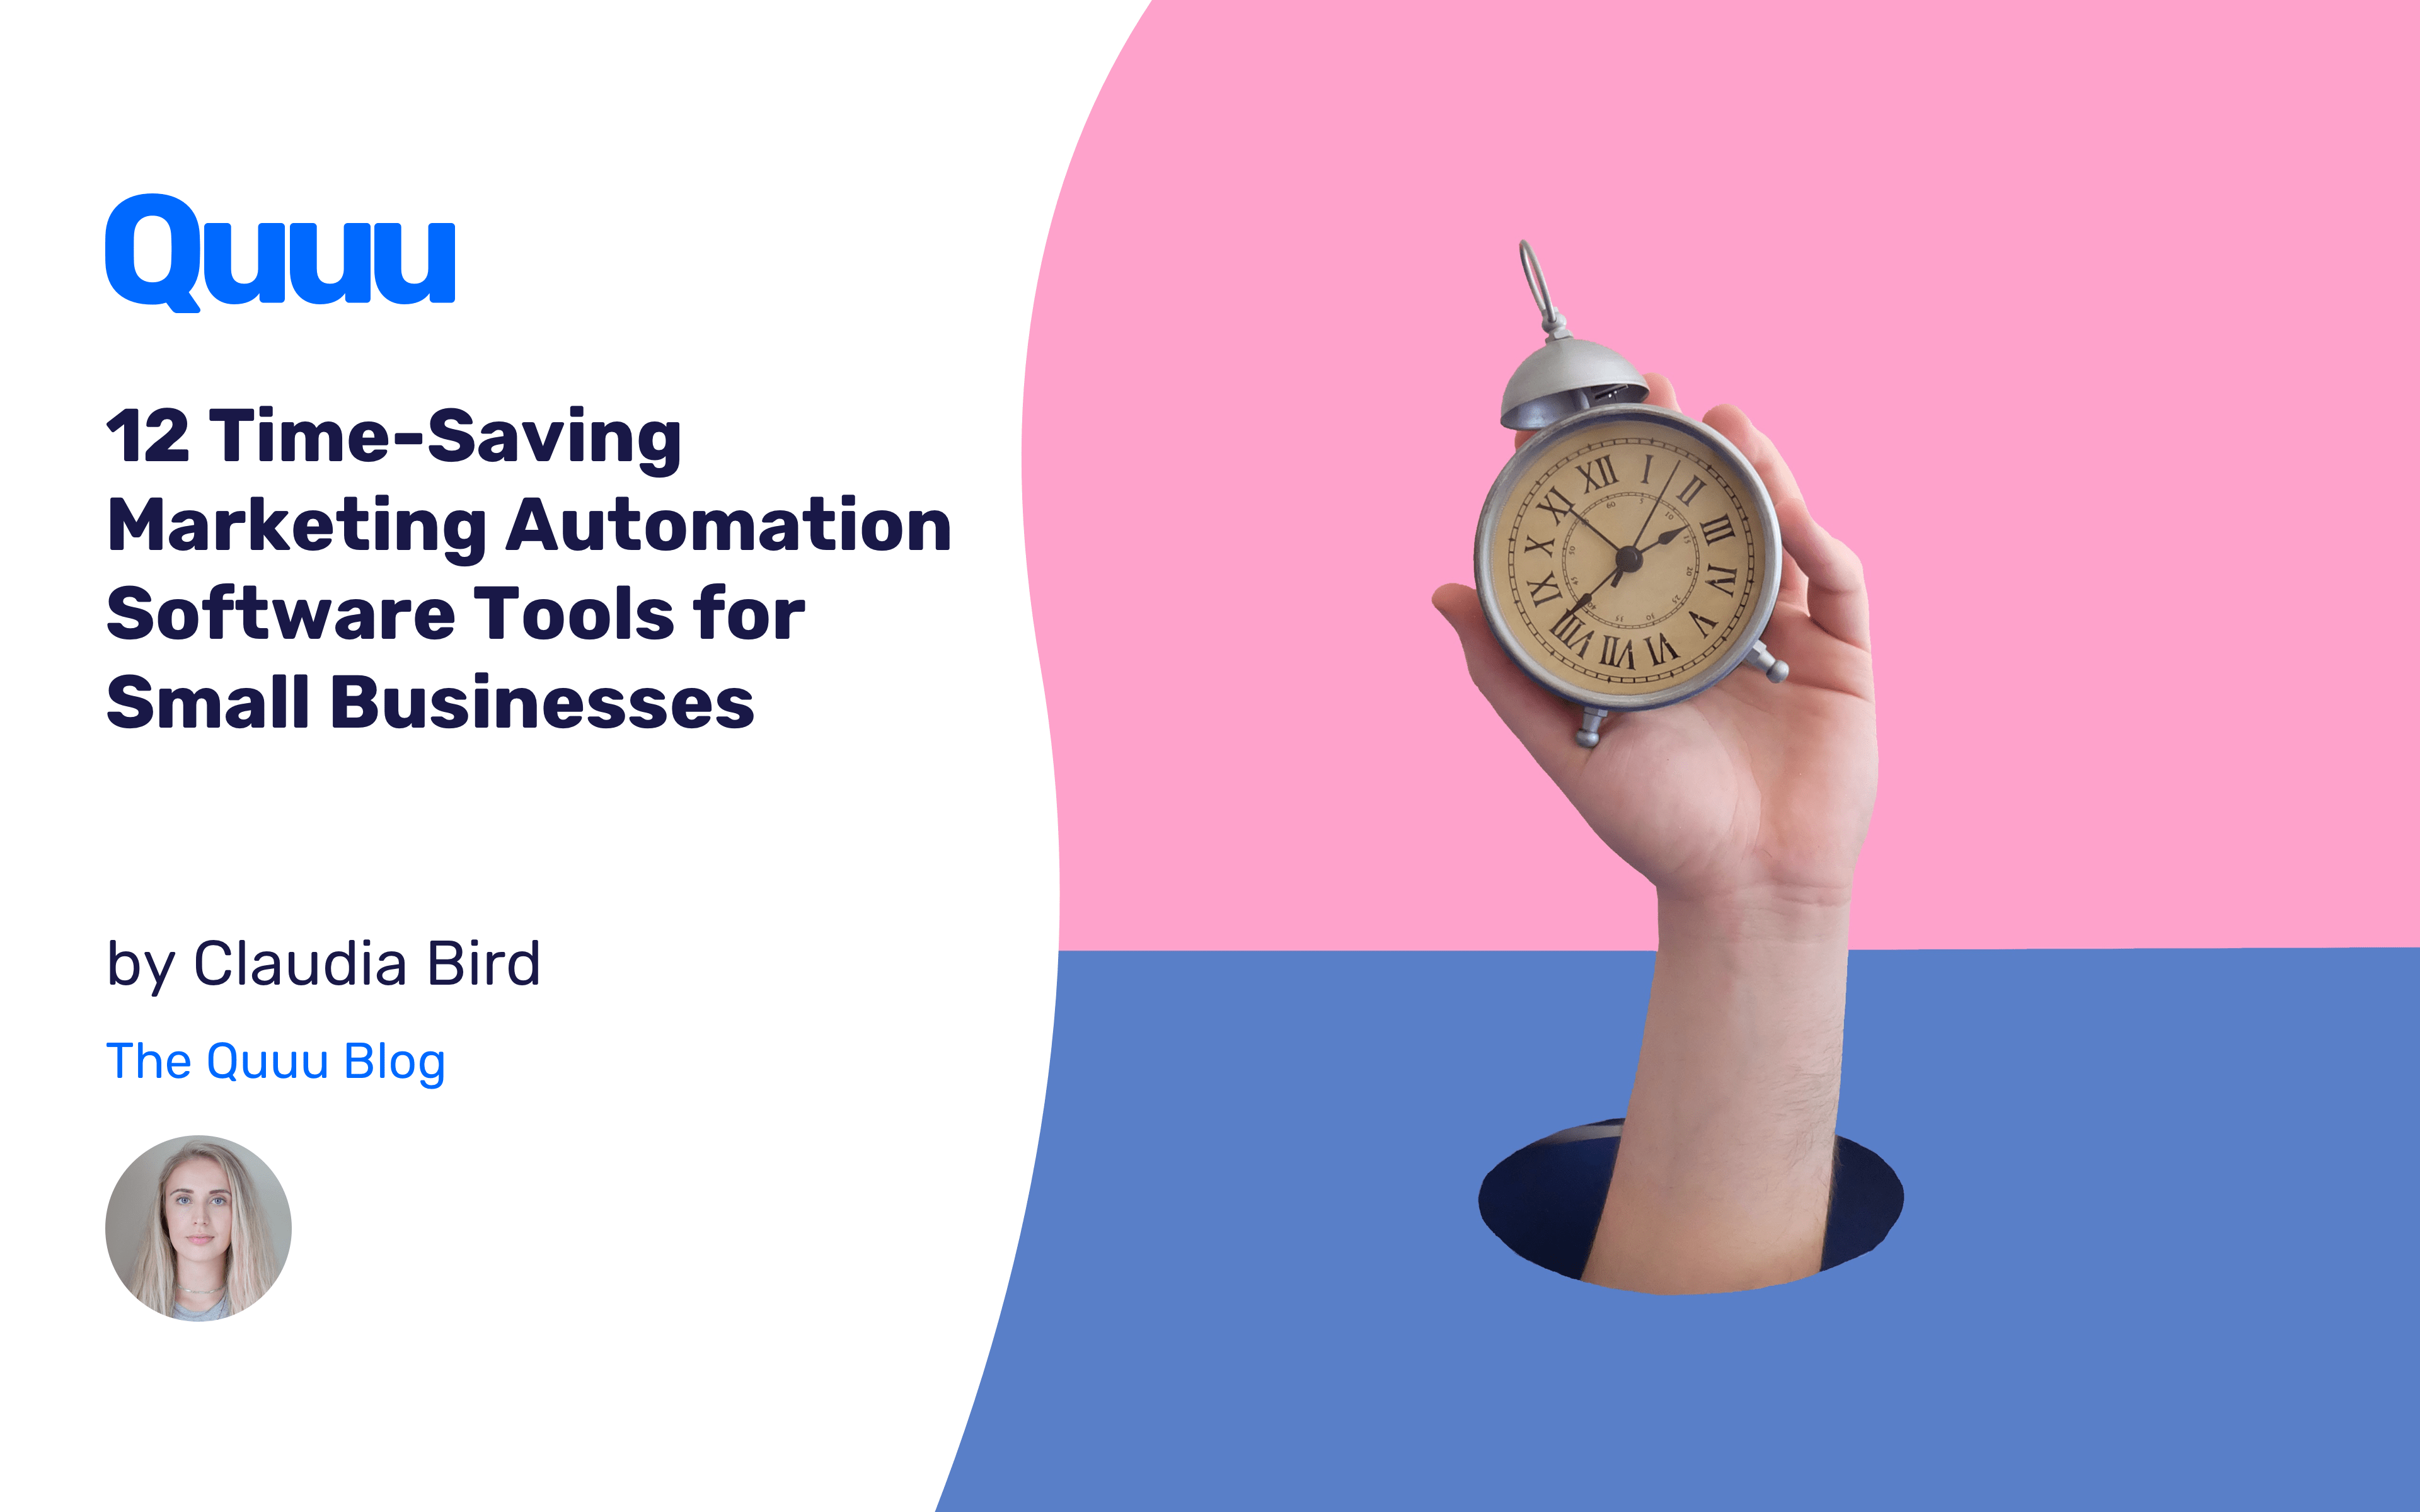 12 Time-Saving Marketing Automation Software Tools for Small Businesses